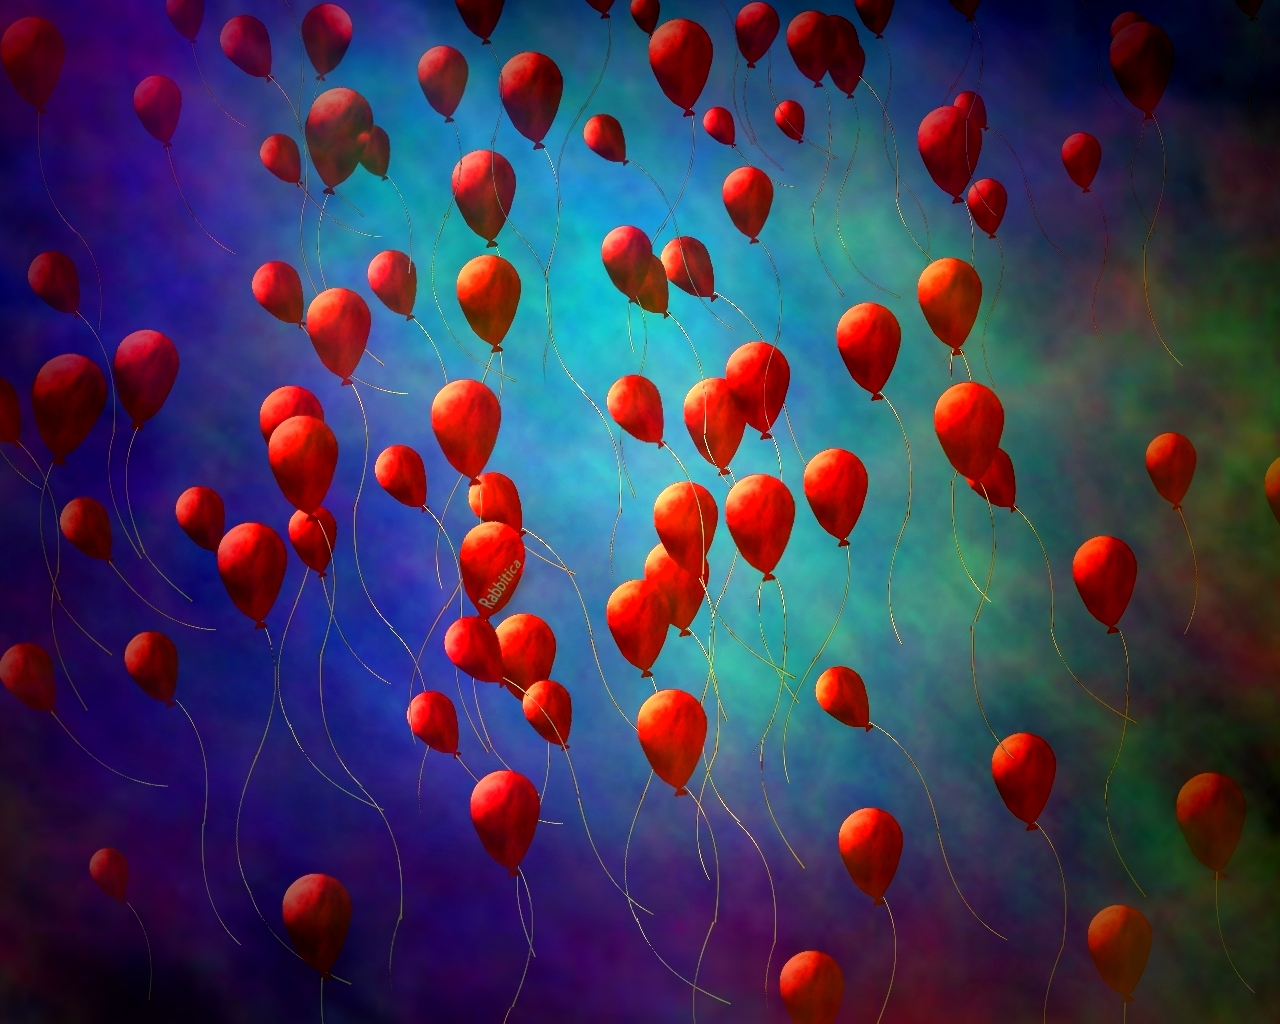 99 red balloons 99 red balloons lyrics by goldfinger: you and i in a little toy shop / buy a bag of balloons with the money we've got / set them free at.